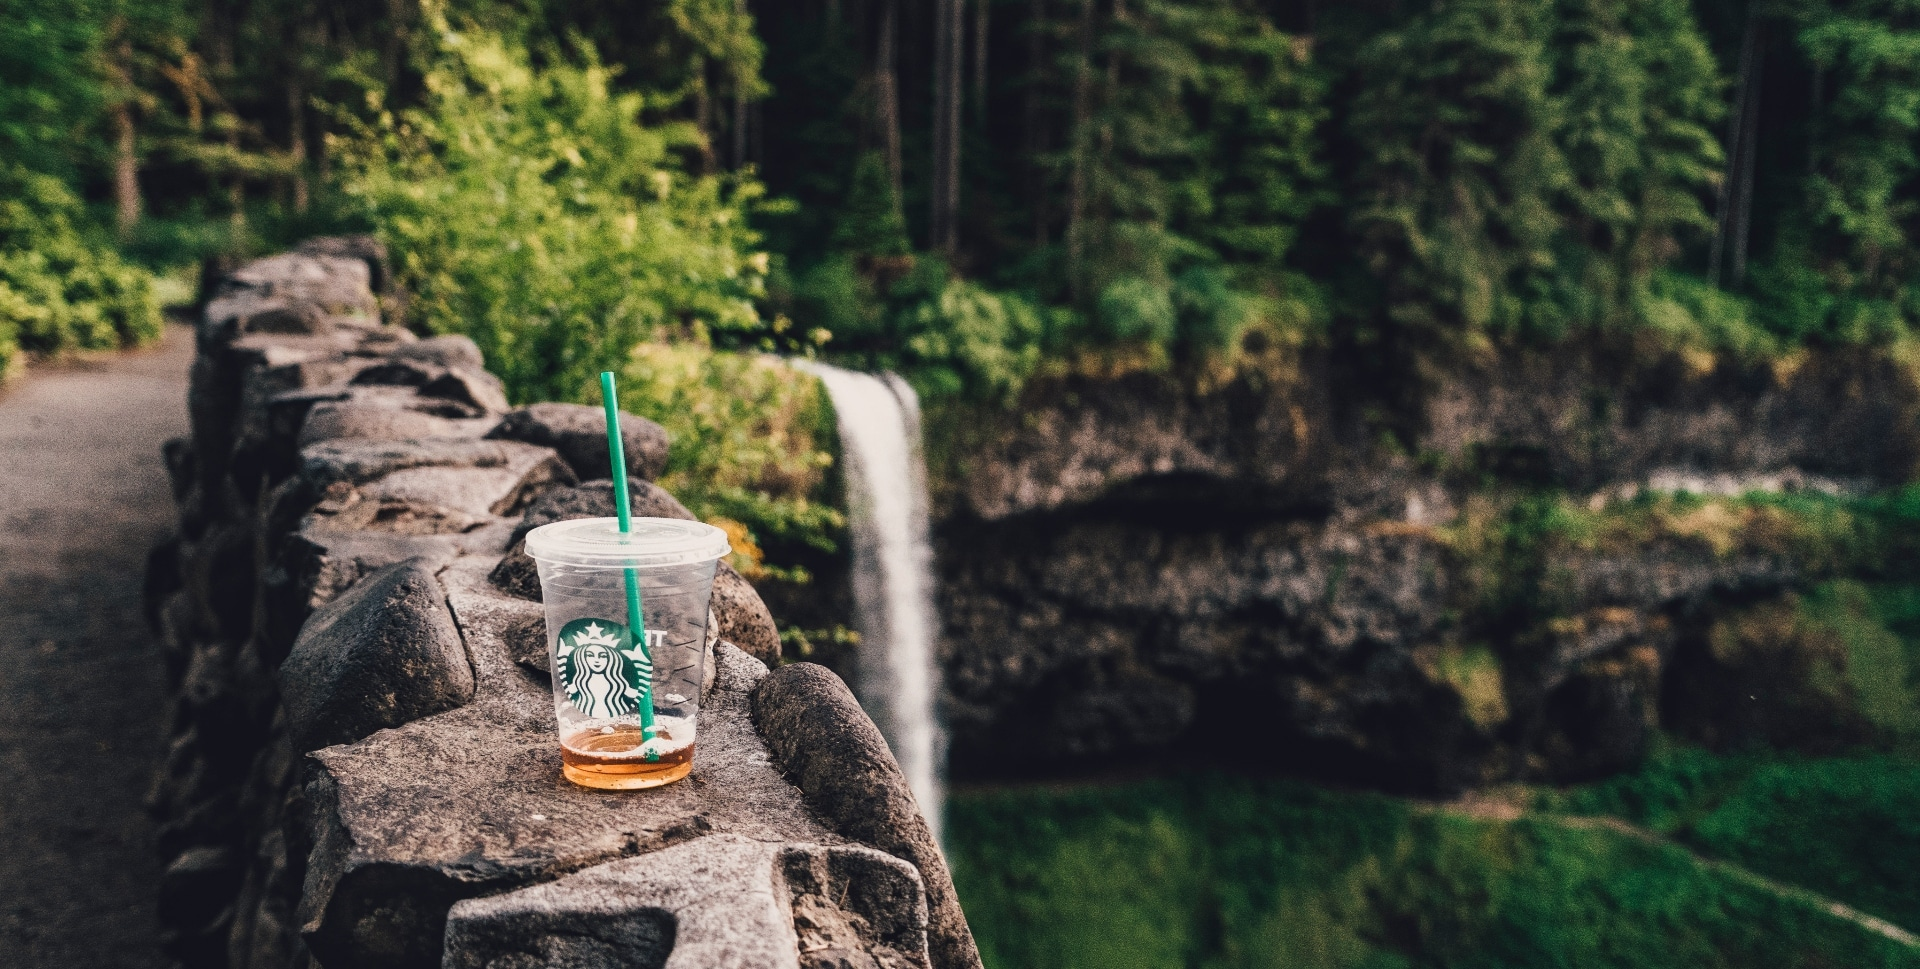 A carelessly discarded single-use Starbucks coffee cup litters the view